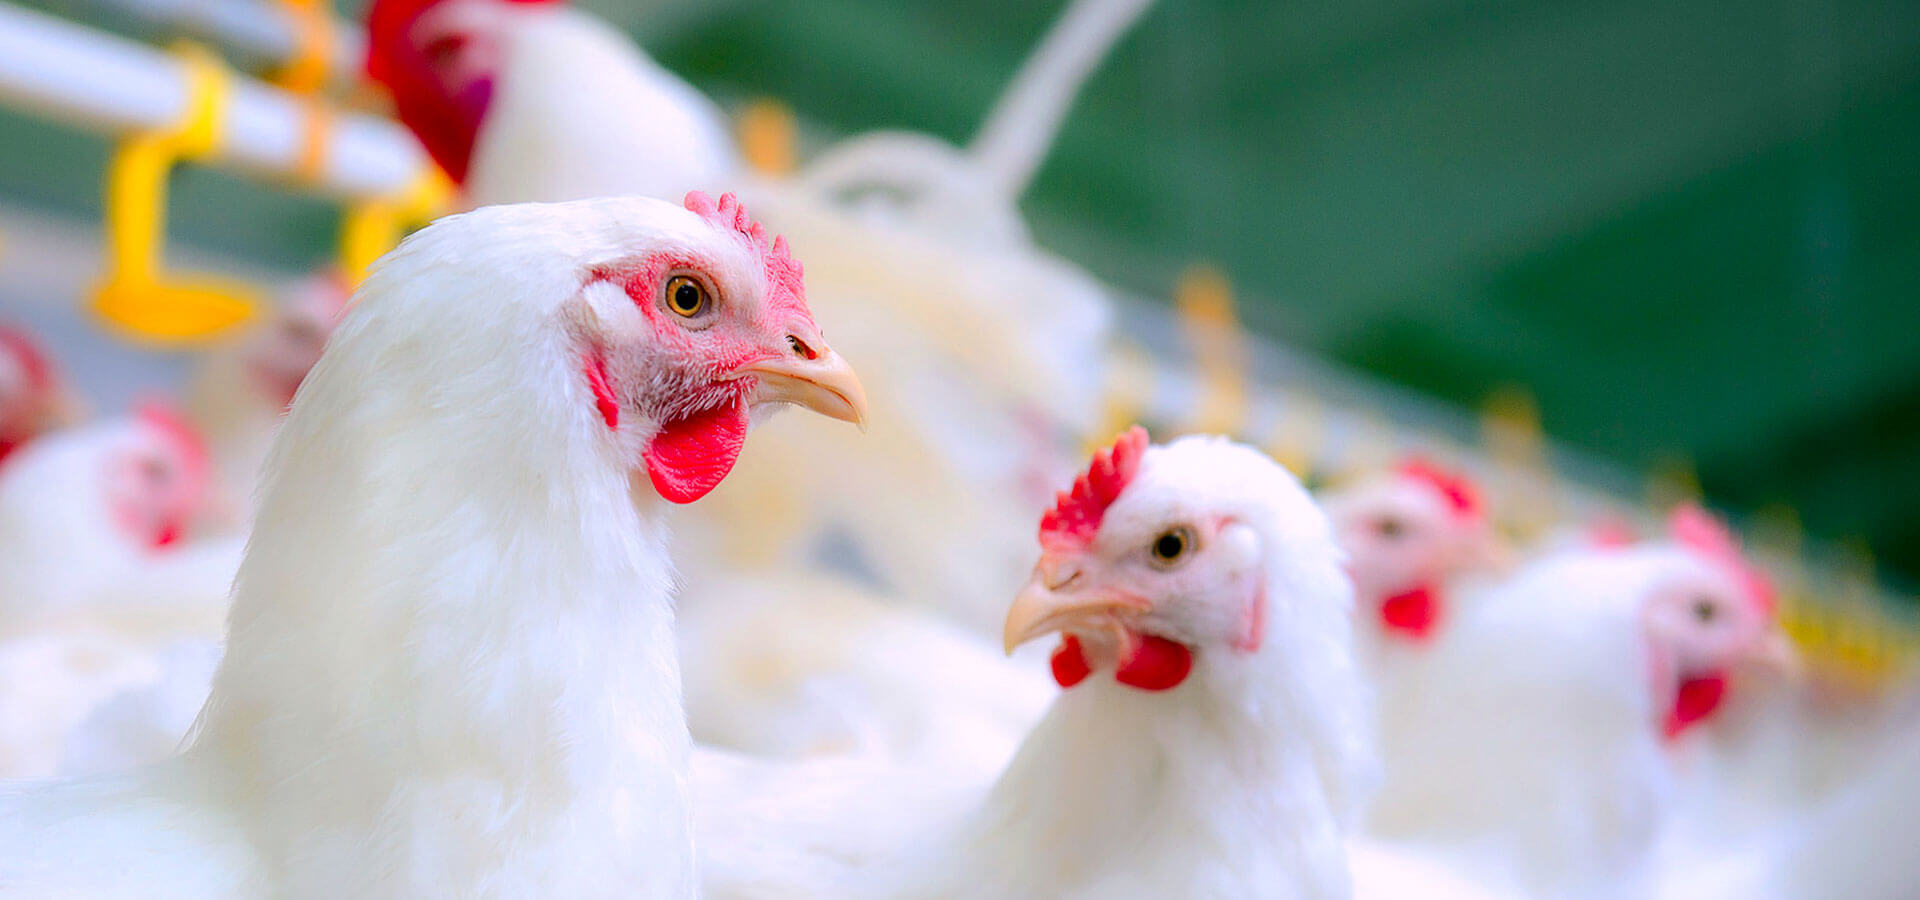 Poultry Feed Supplement Manufacturers